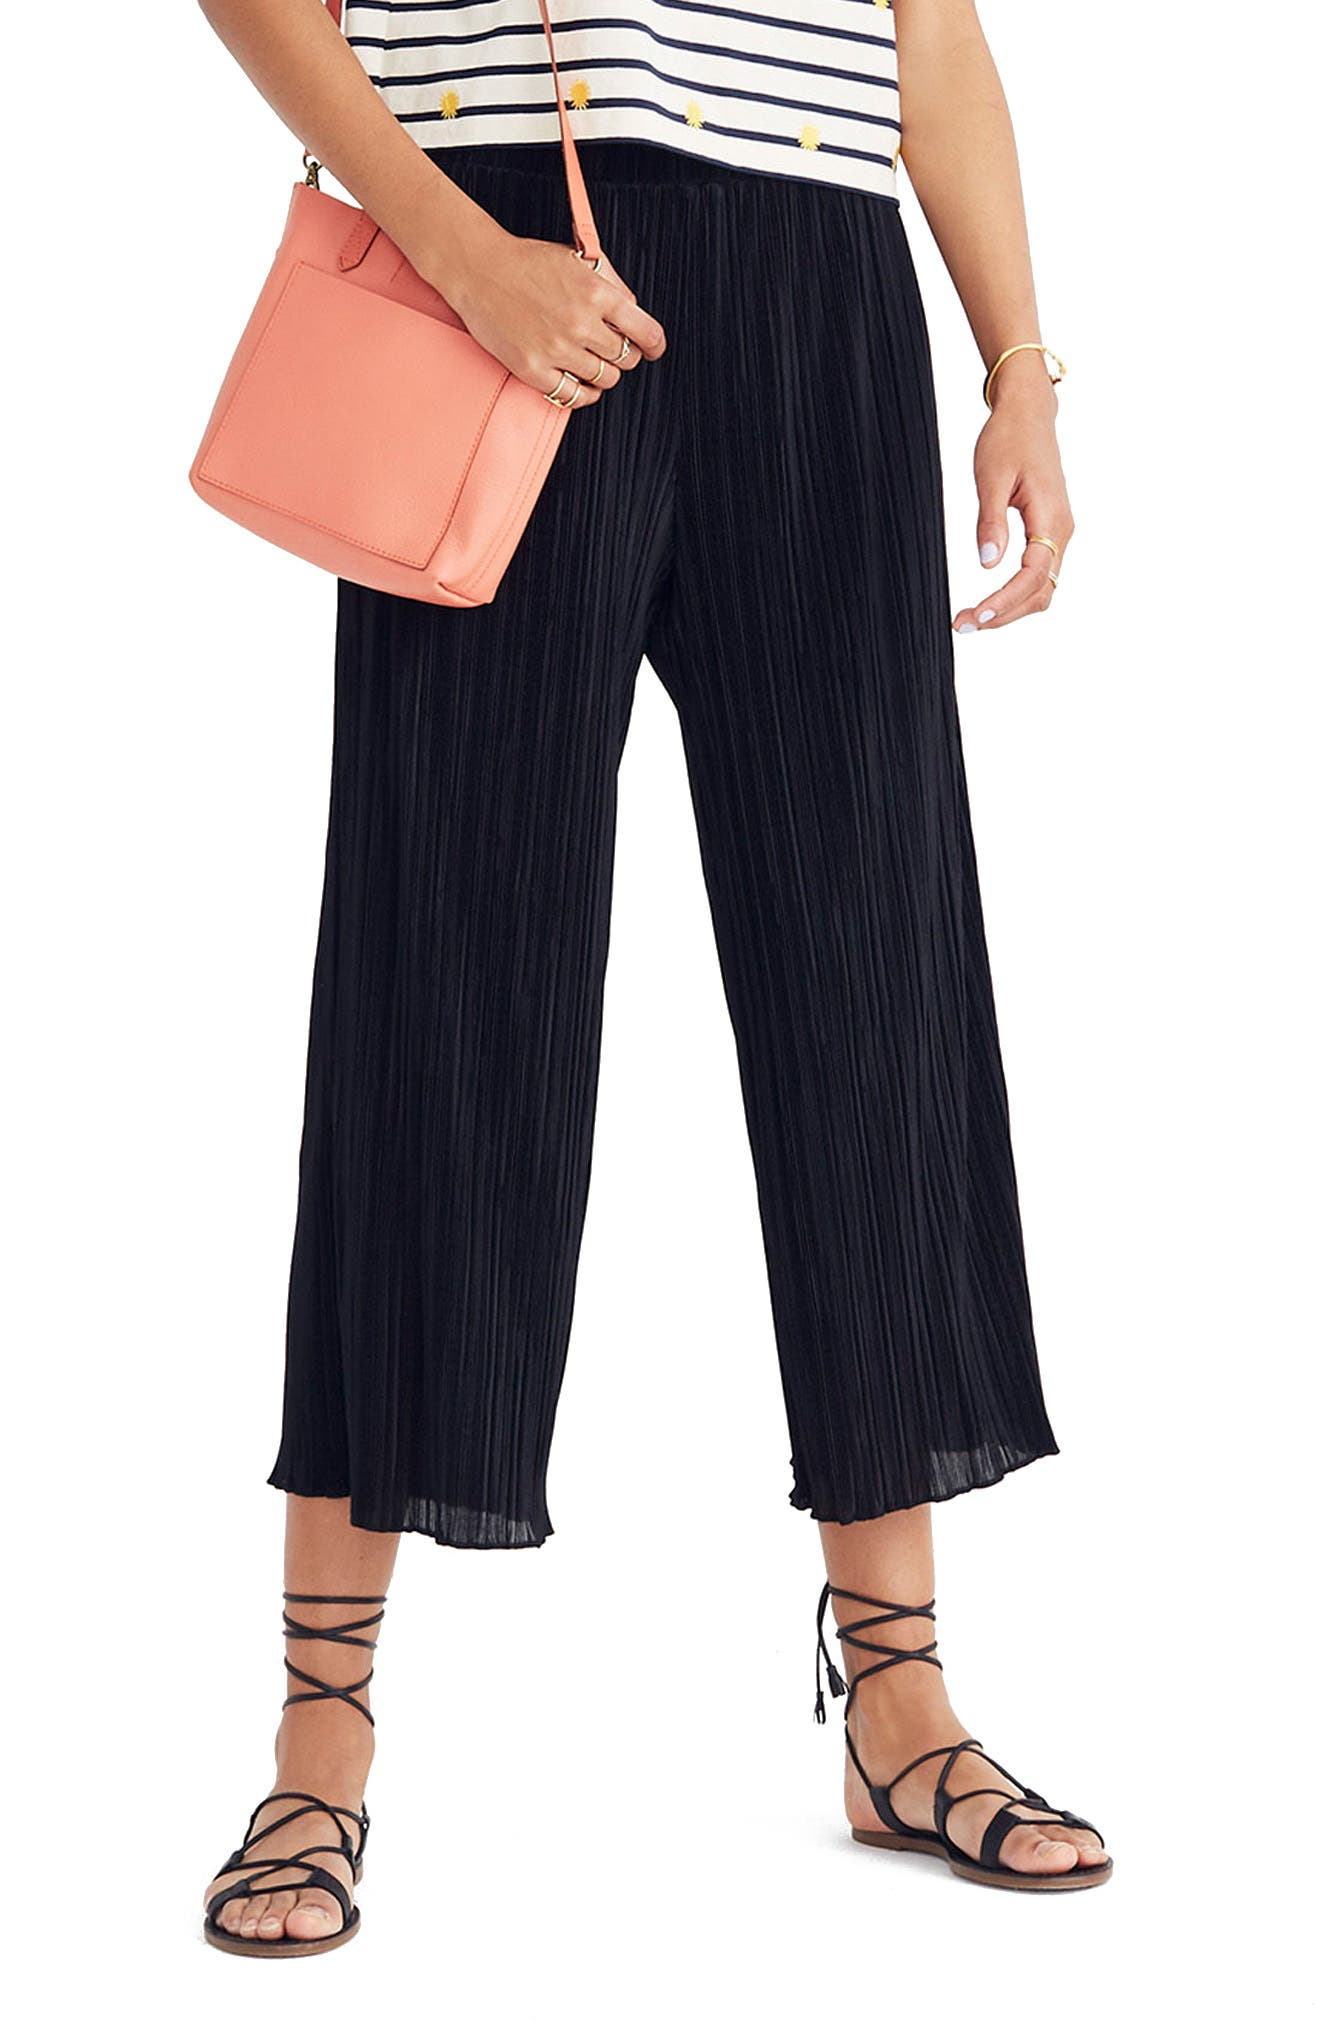 Texture & Thread Micropleat Wide Leg Pants,                         Main,                         color, 001